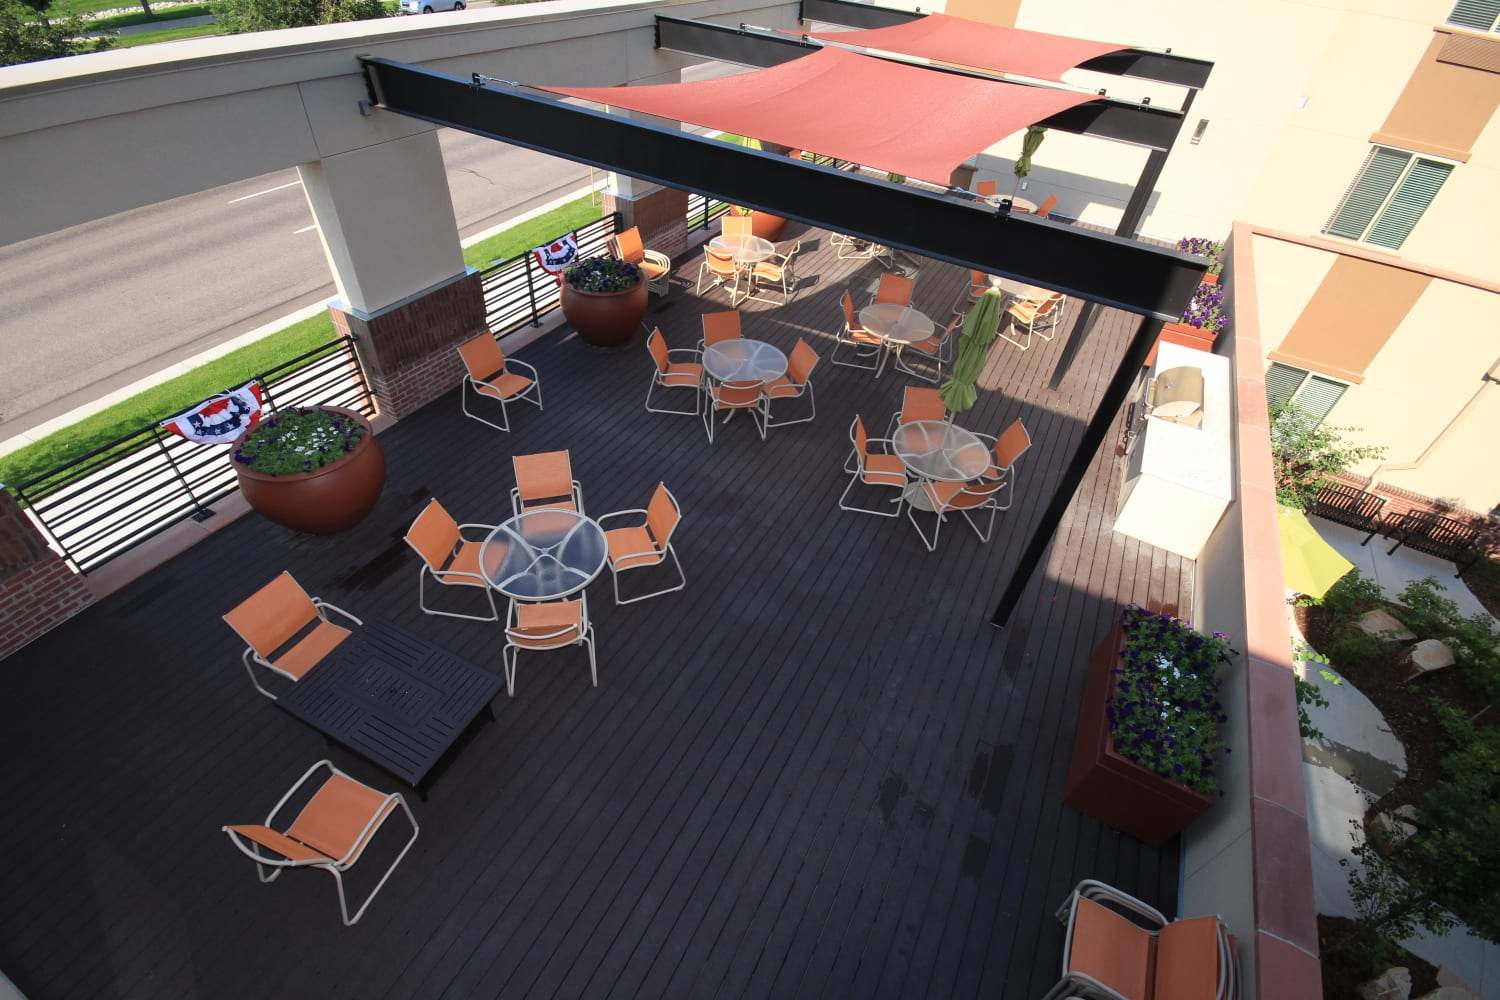 Exterior aerial view of the patio dining area at Village at Belmar